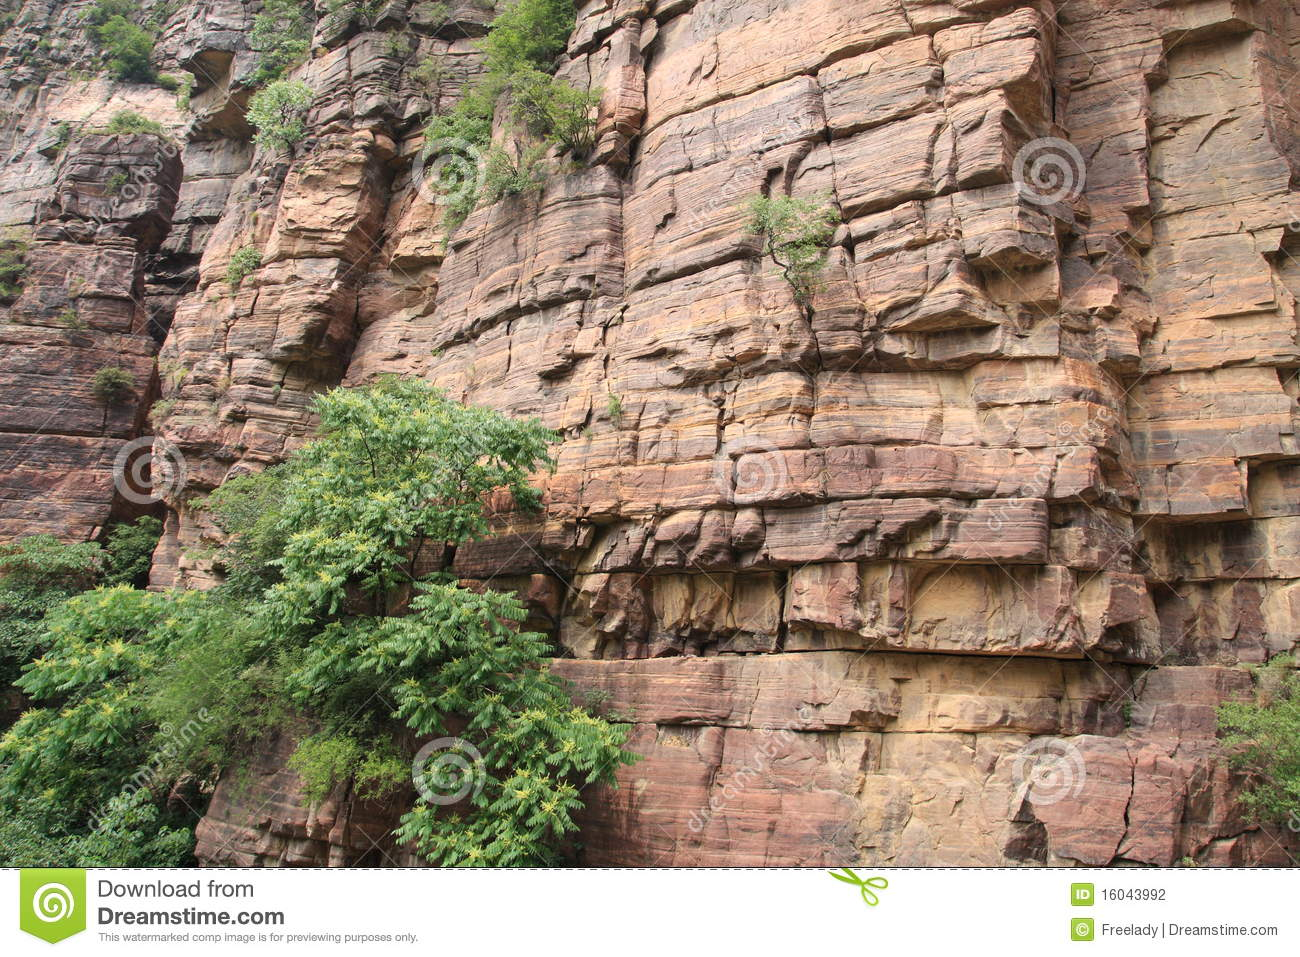 Red cliff in Taihang mountain of China